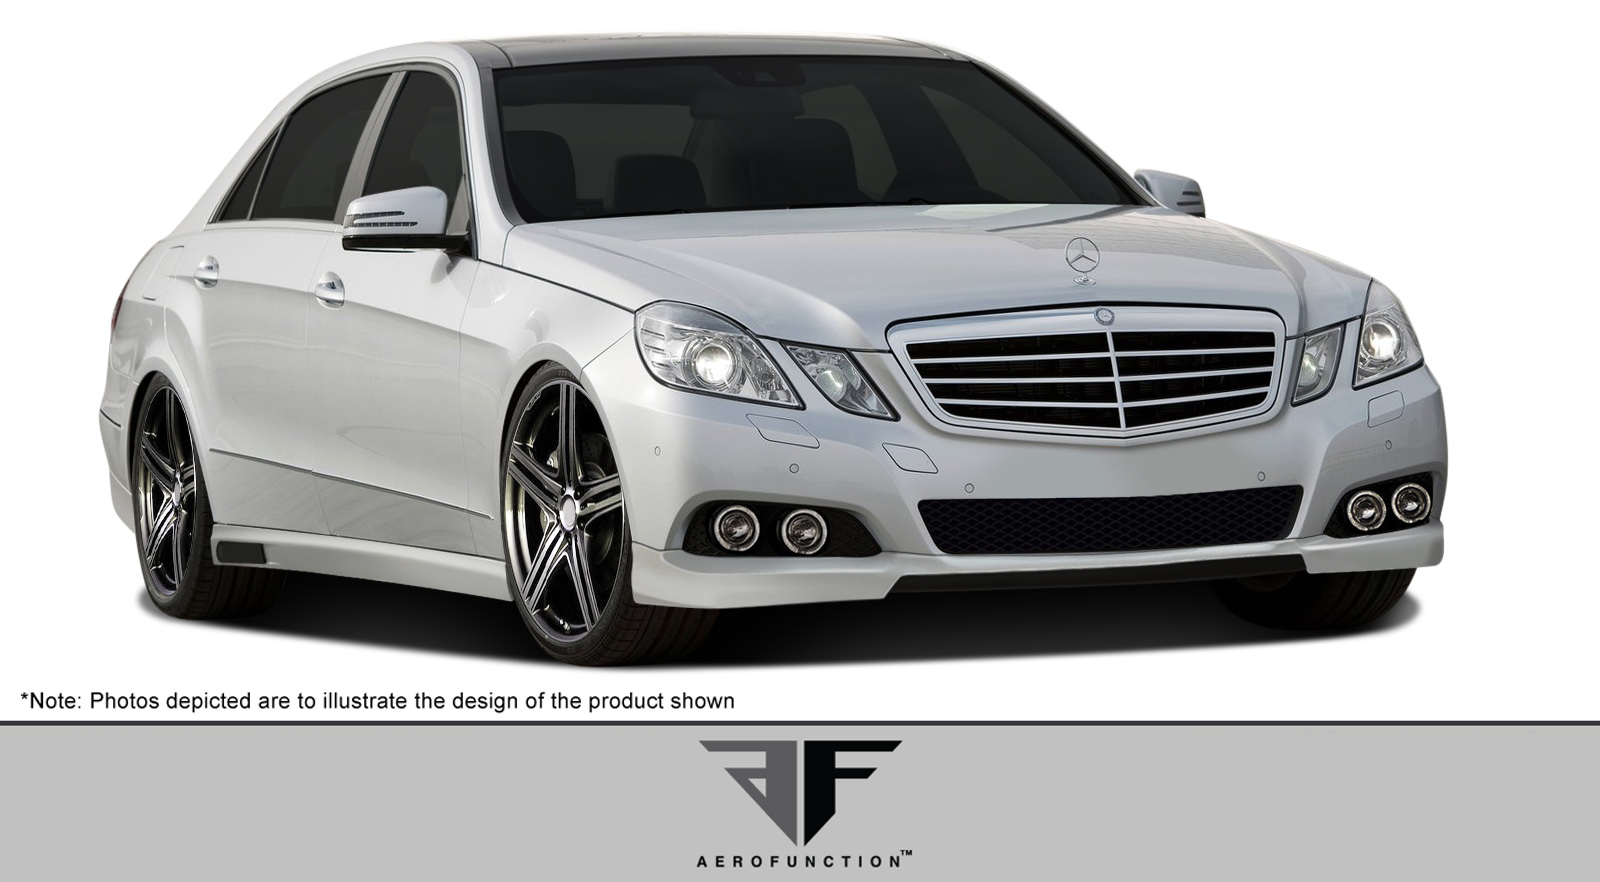 Polyurethane Bodykit Bodykit for 2010 Mercedes E Class 4DR - 2010-2012 Mercedes E Class W212 AF-1 Body Kit (base model) ( PUR-RIM ) - 5 Piece - Includ